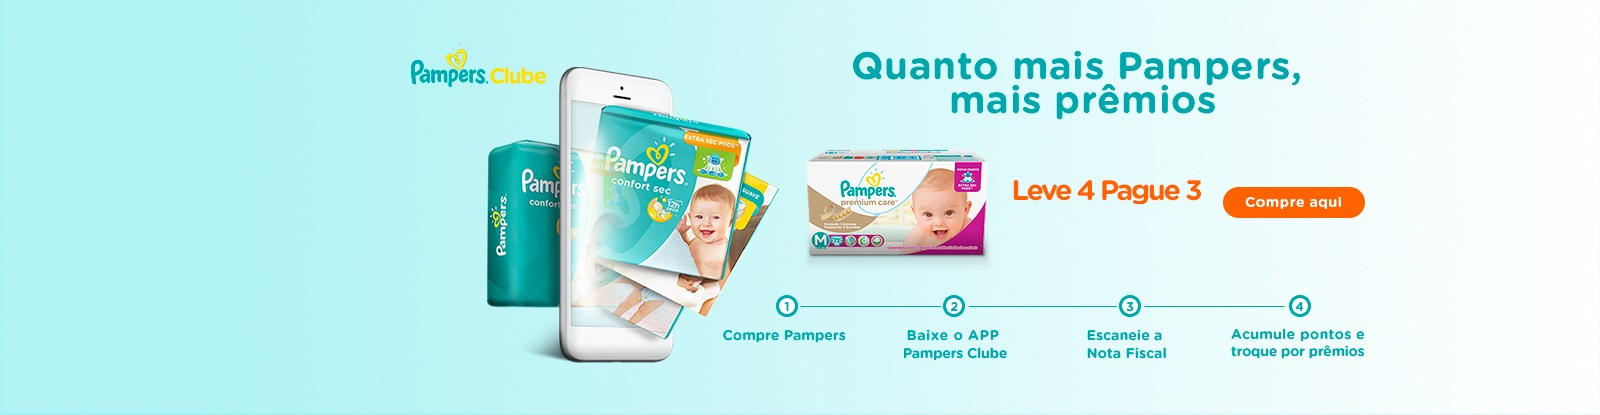 pampers_club